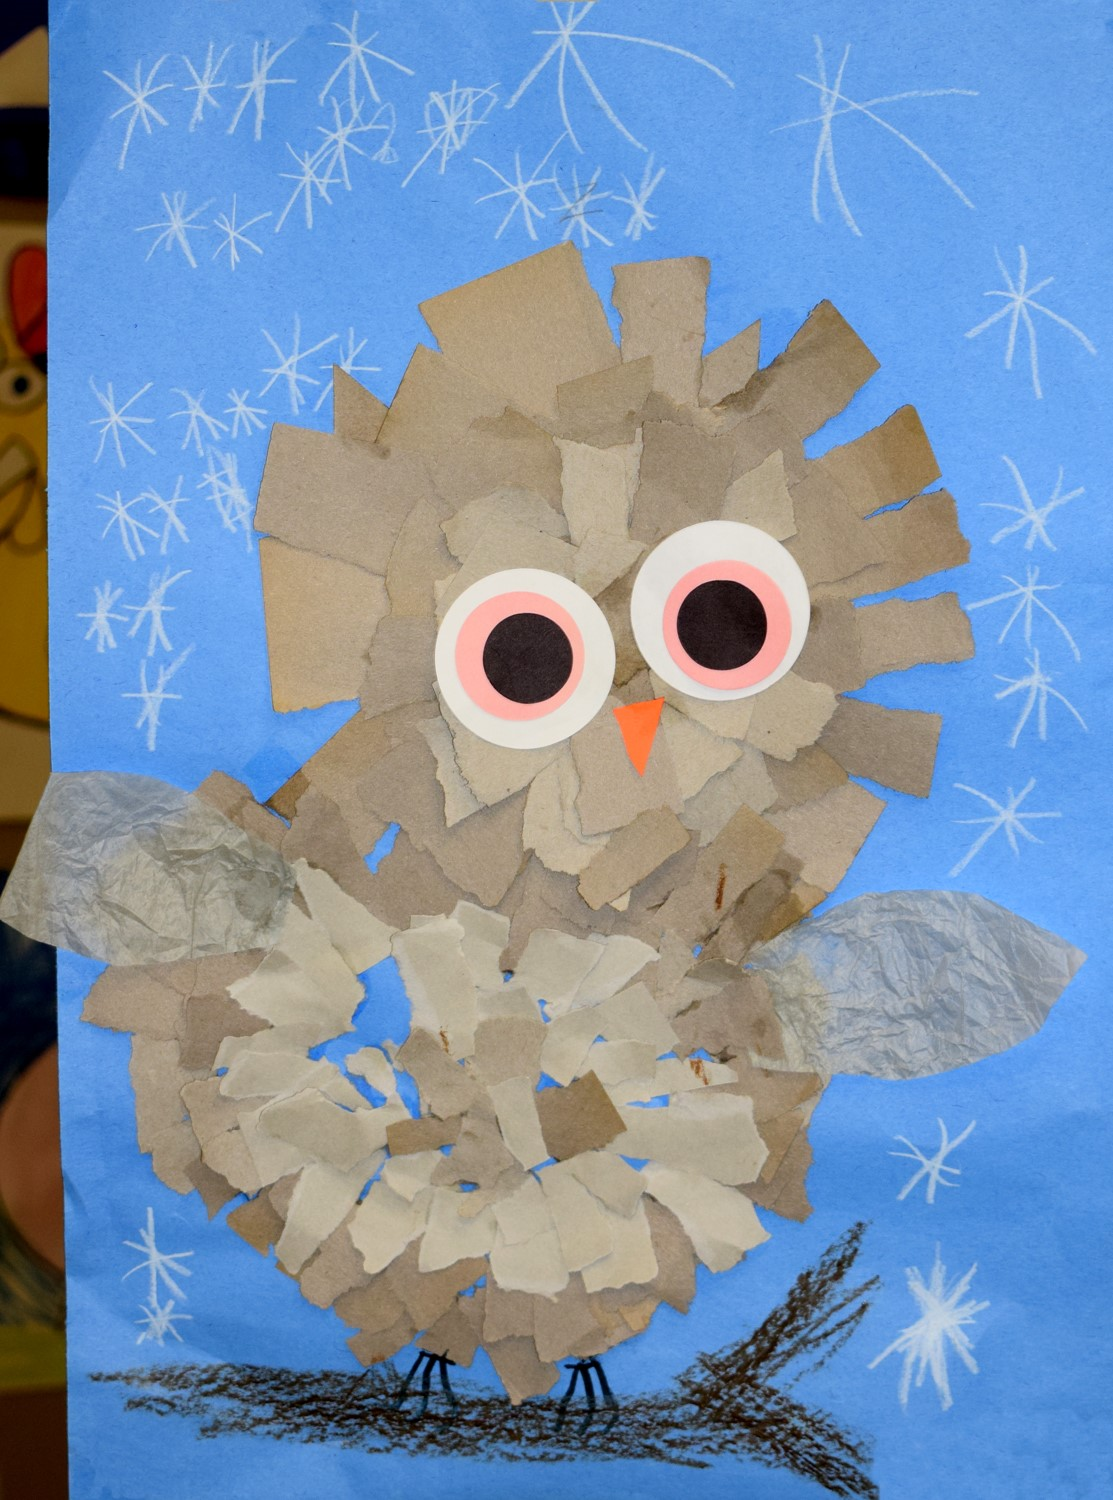 Construction-paper Owl by Addyson